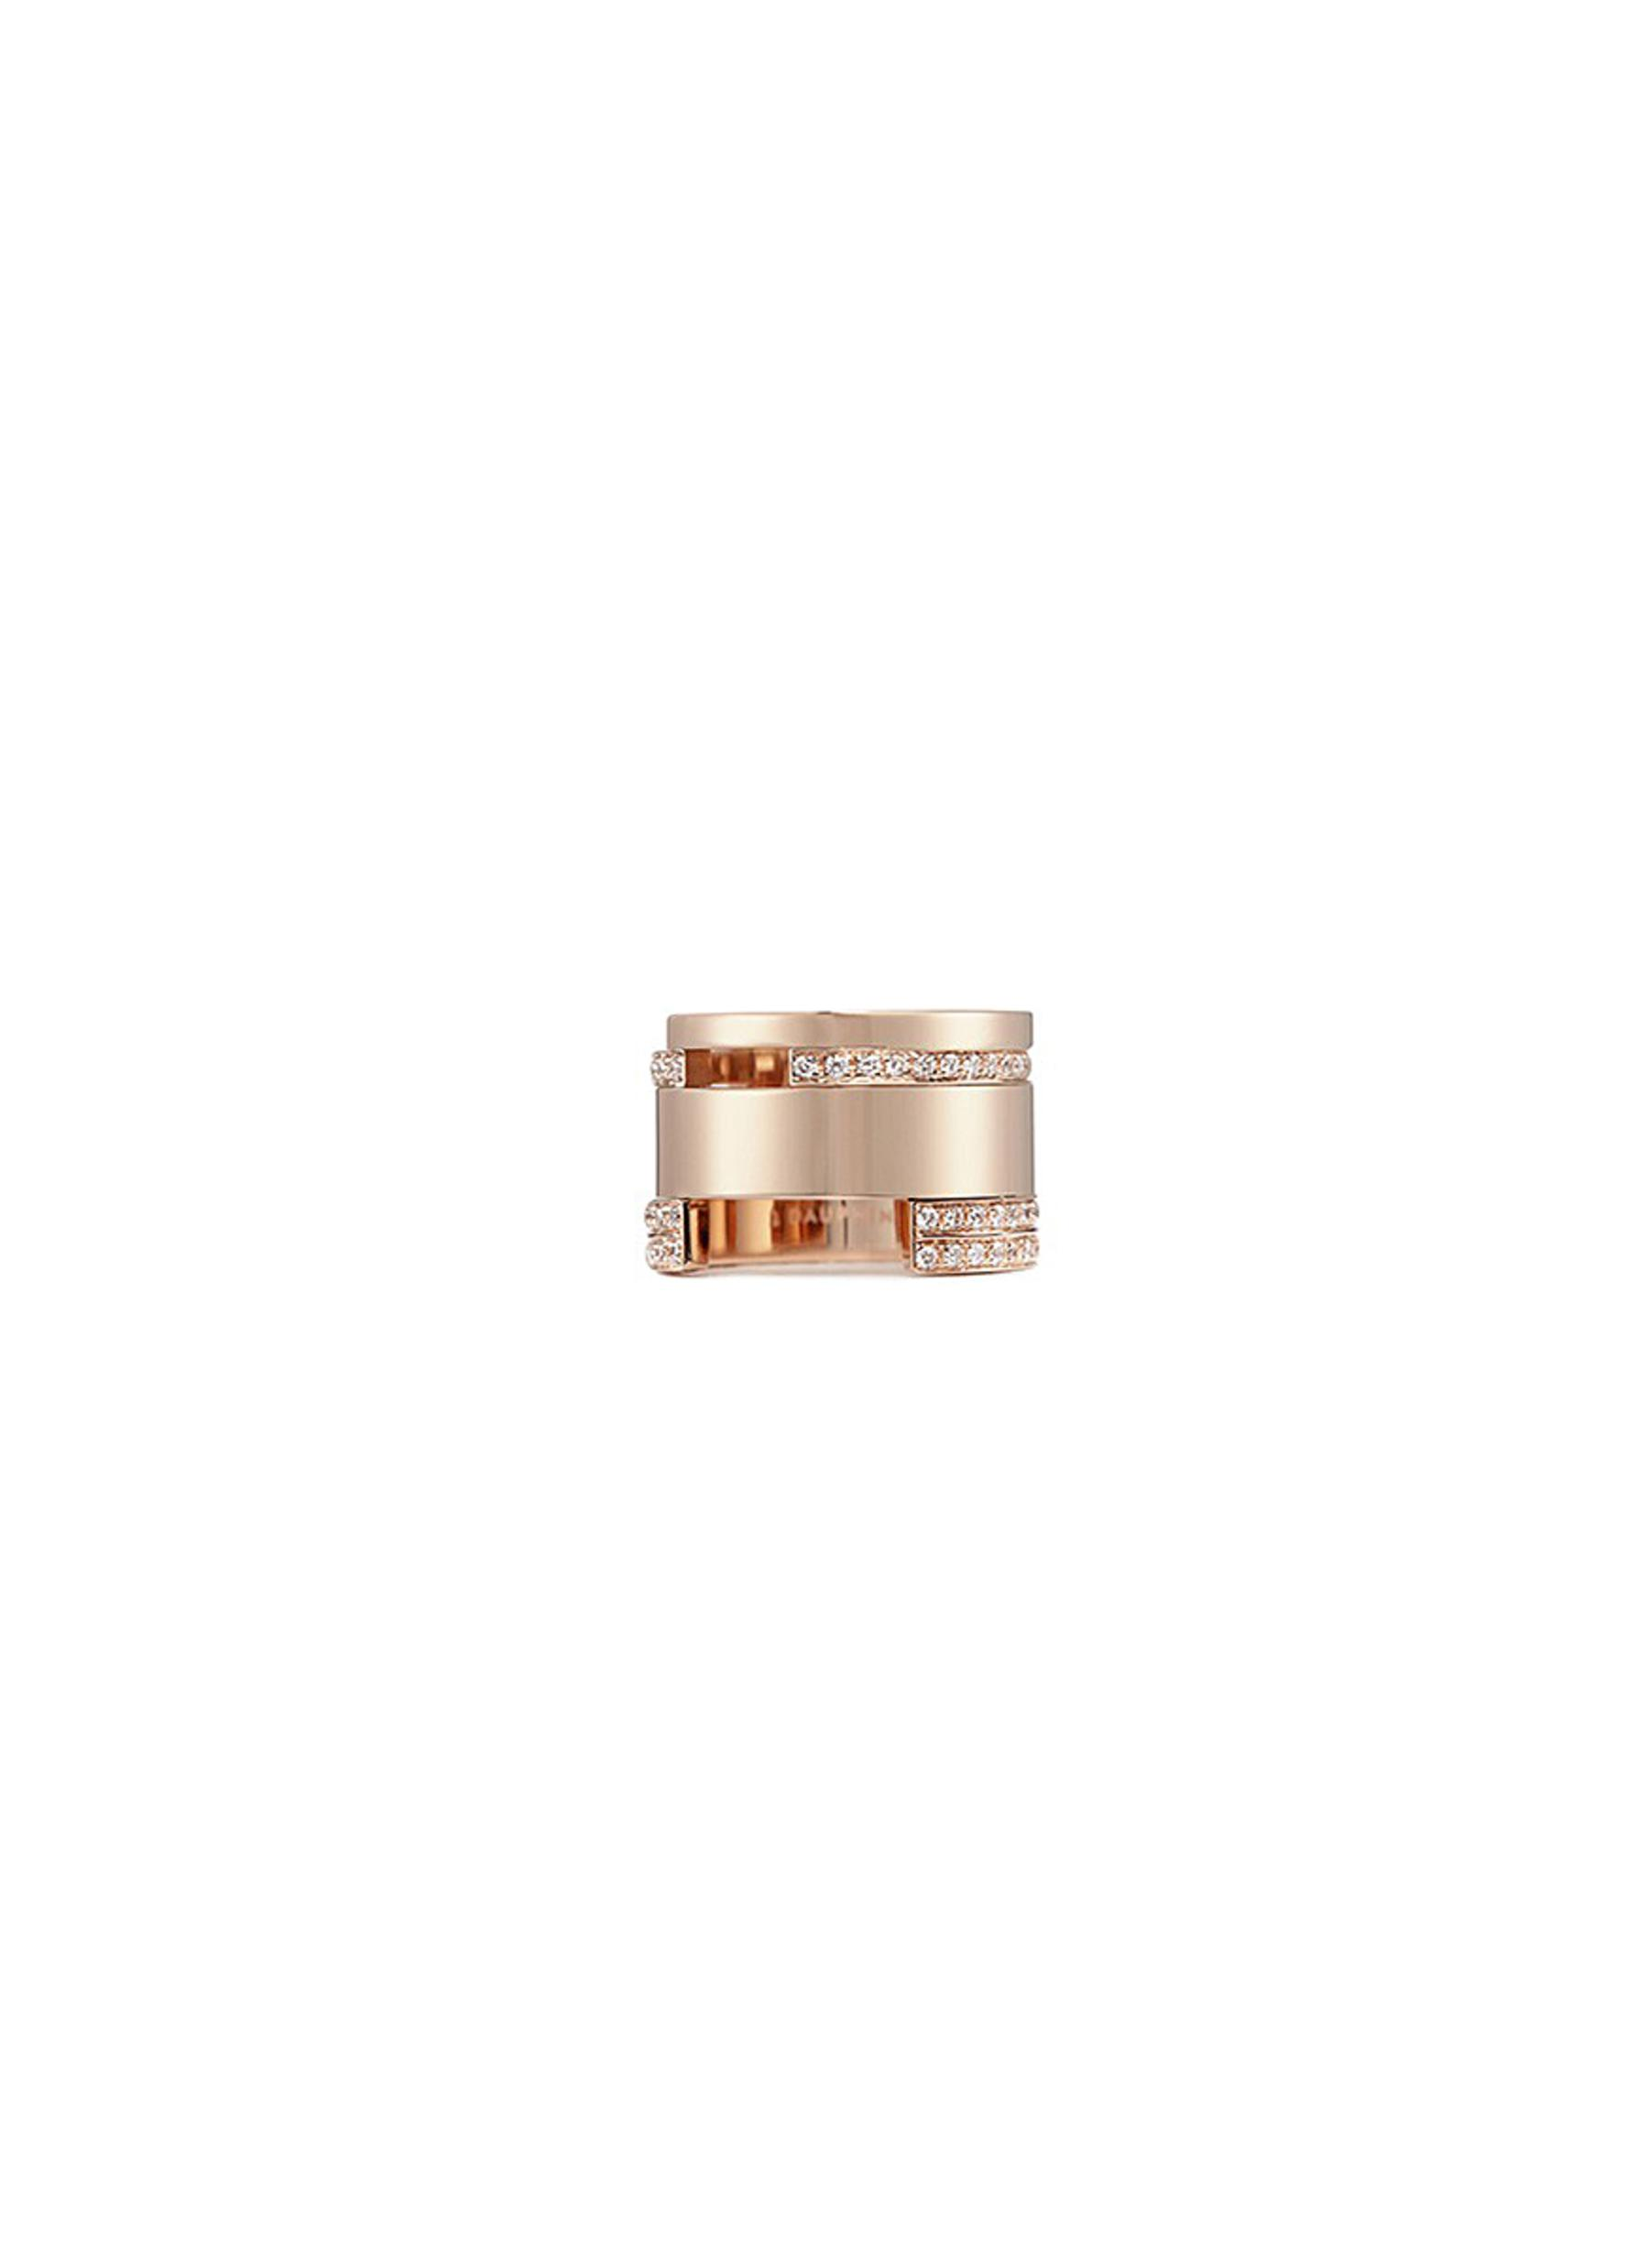 DIAMOND 18K ROSE GOLD WIDE CUTOUT RING